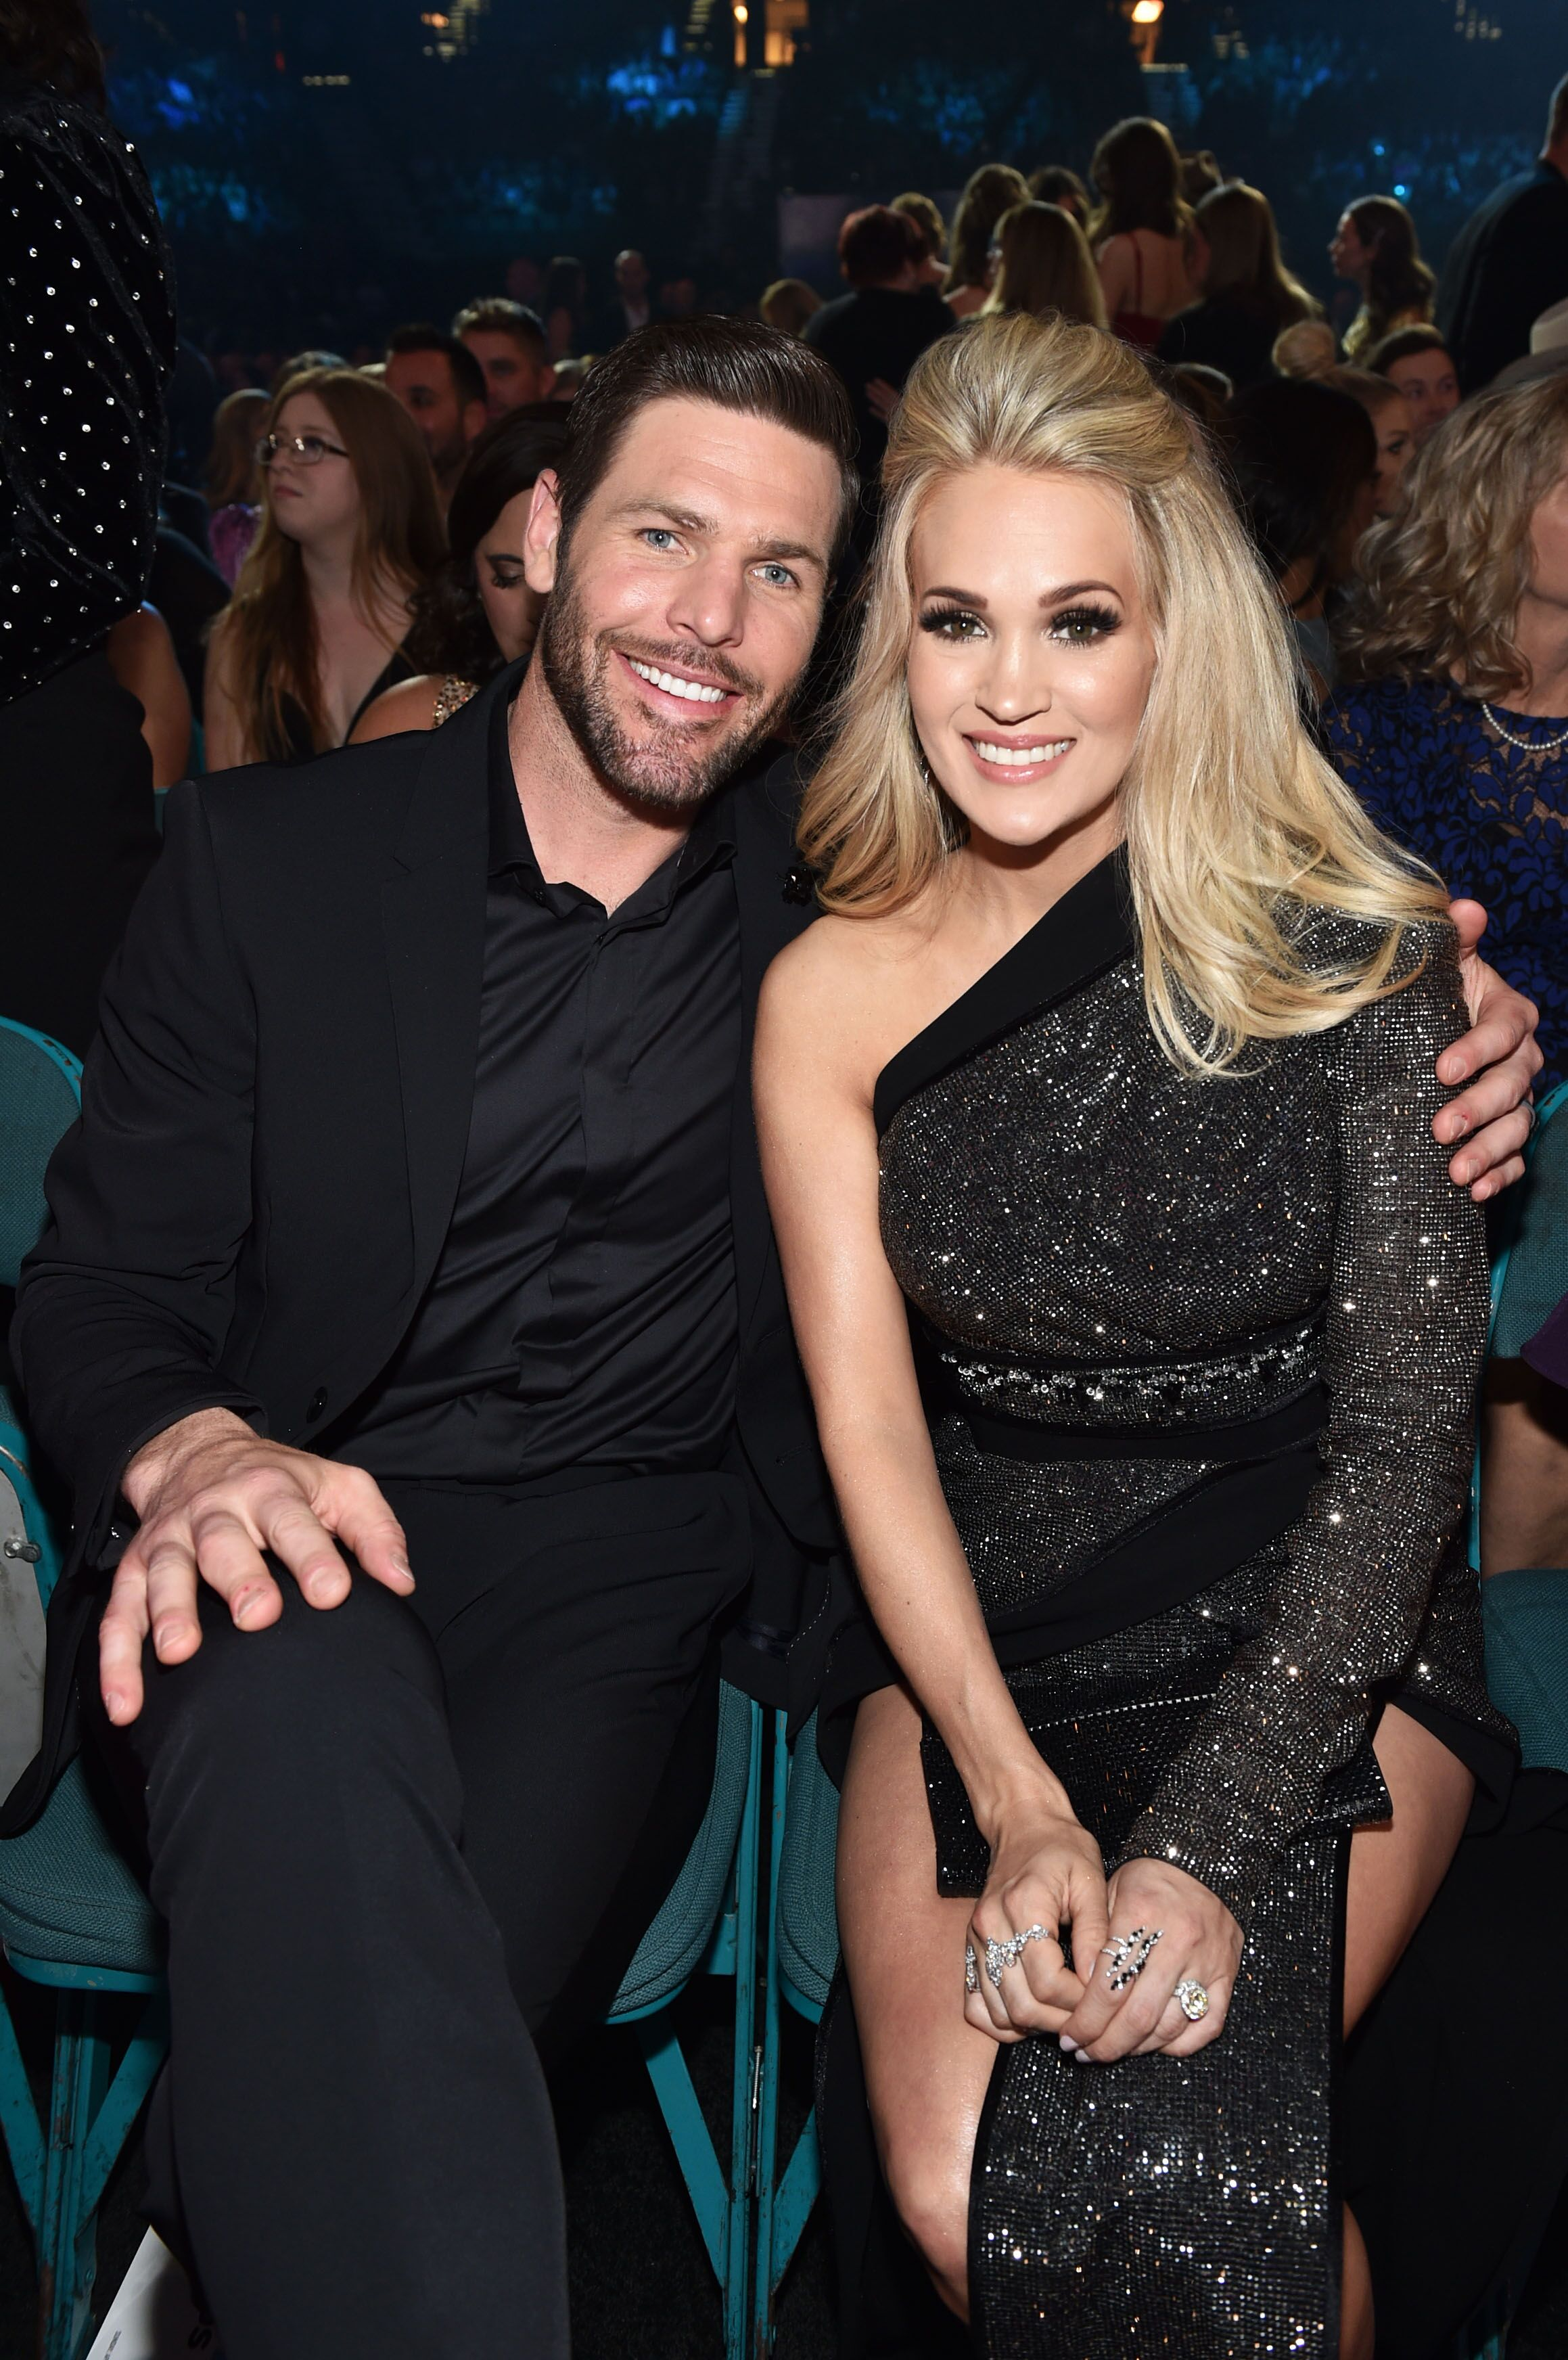 Carrie Underwood and Mike Fisher attend the Academy of Country Music Awards. | Source: Getty Images